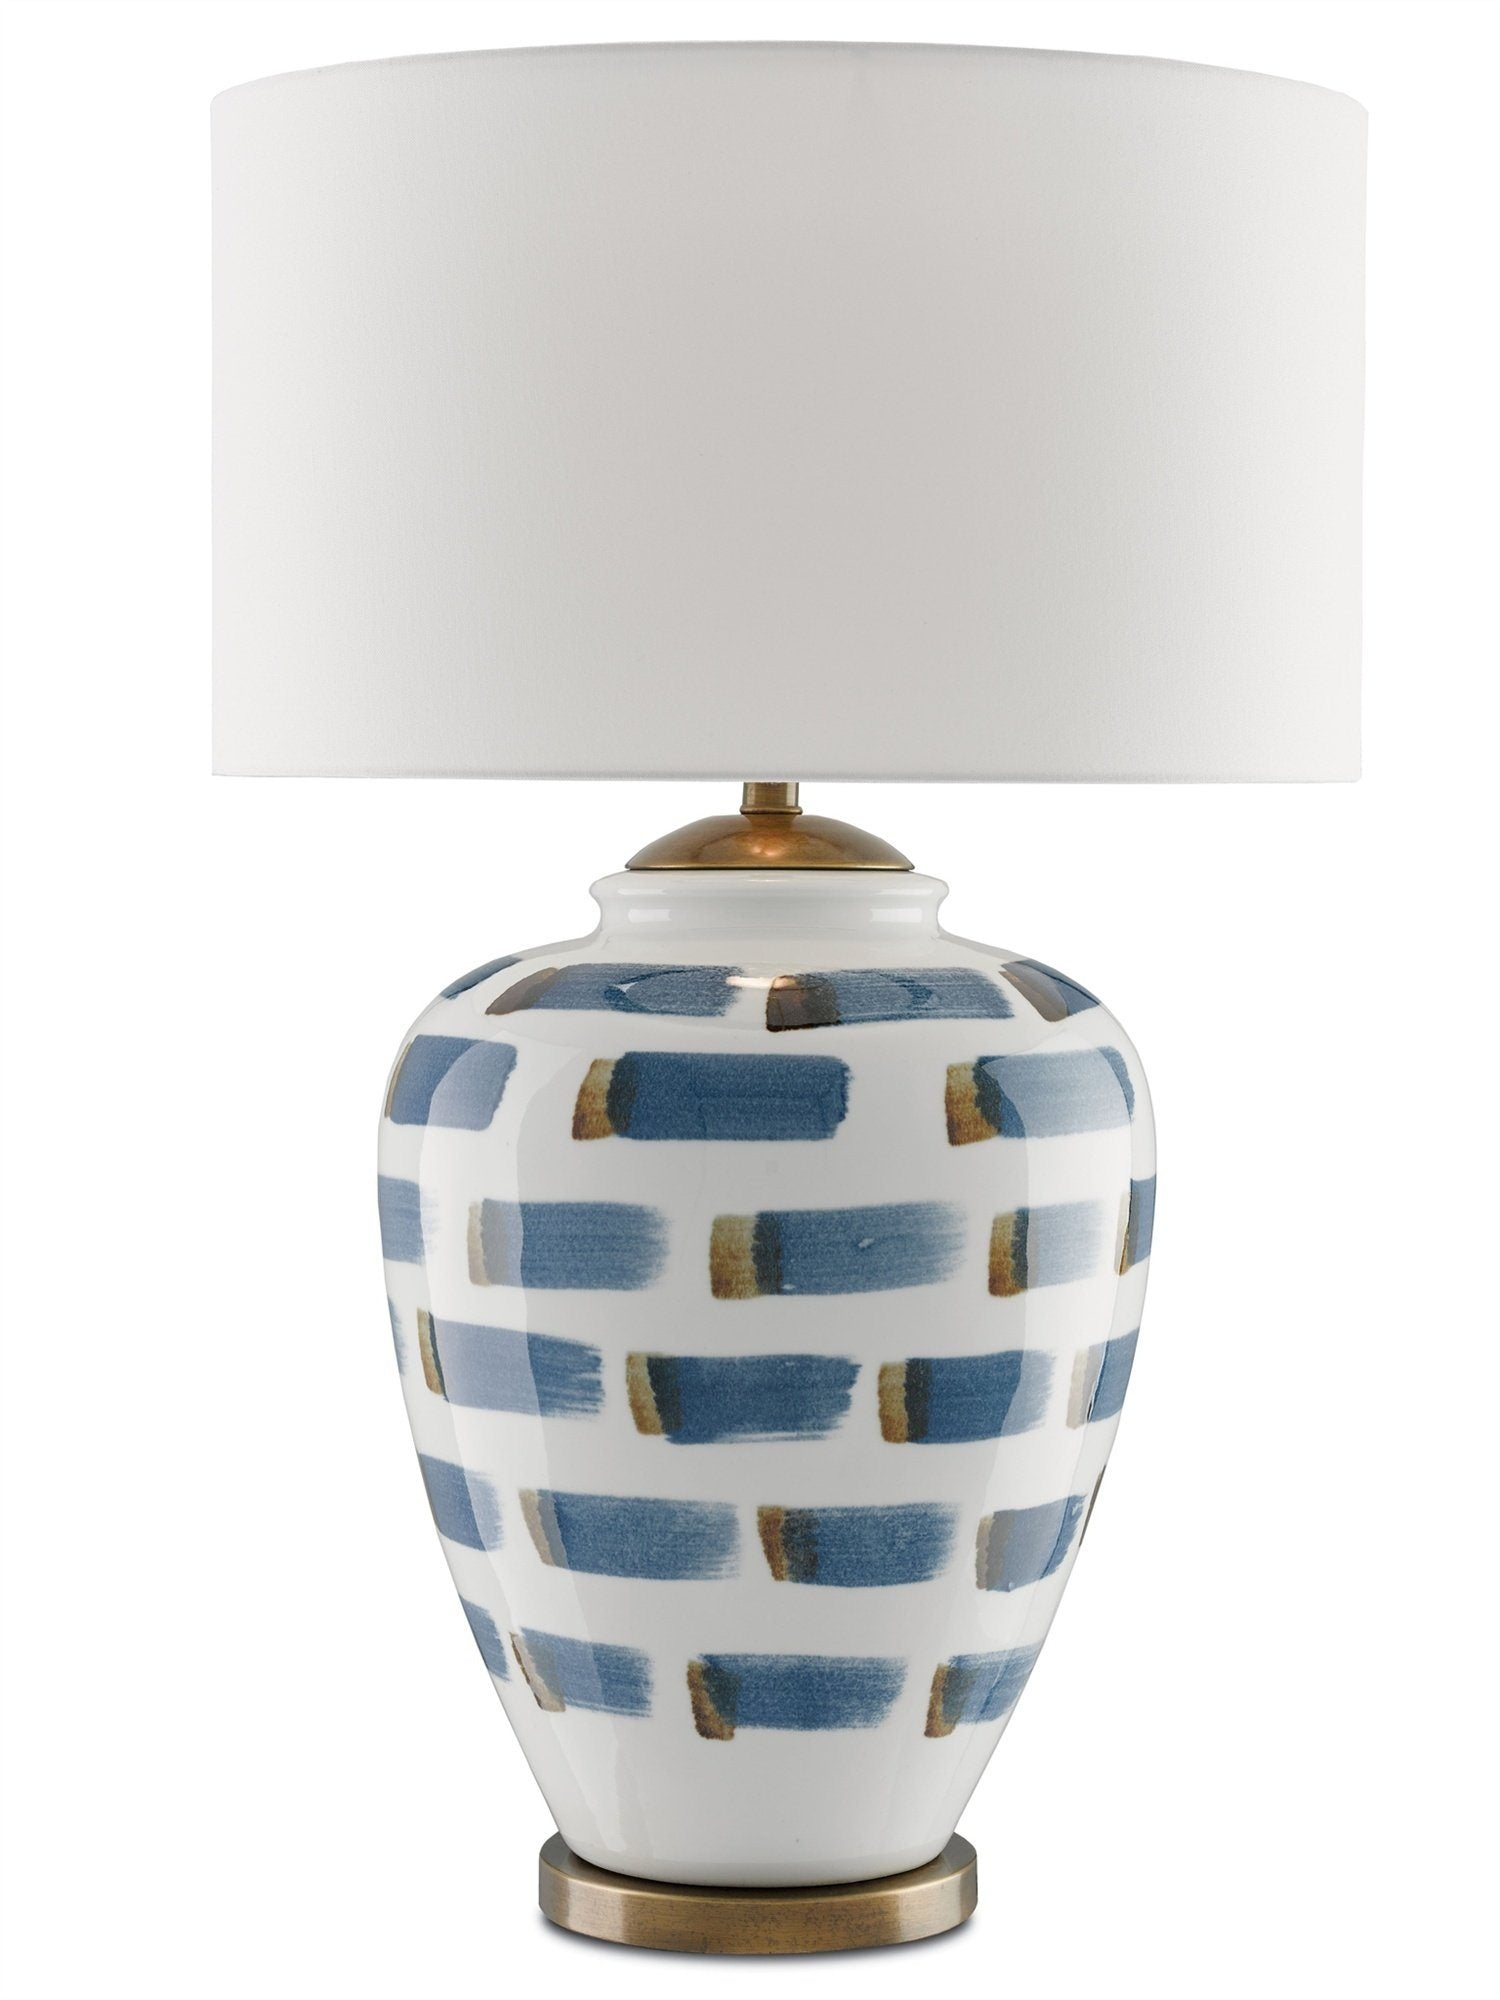 Currey and Company Brushstroke Table Lamp 6000-0019 - LOVECUP